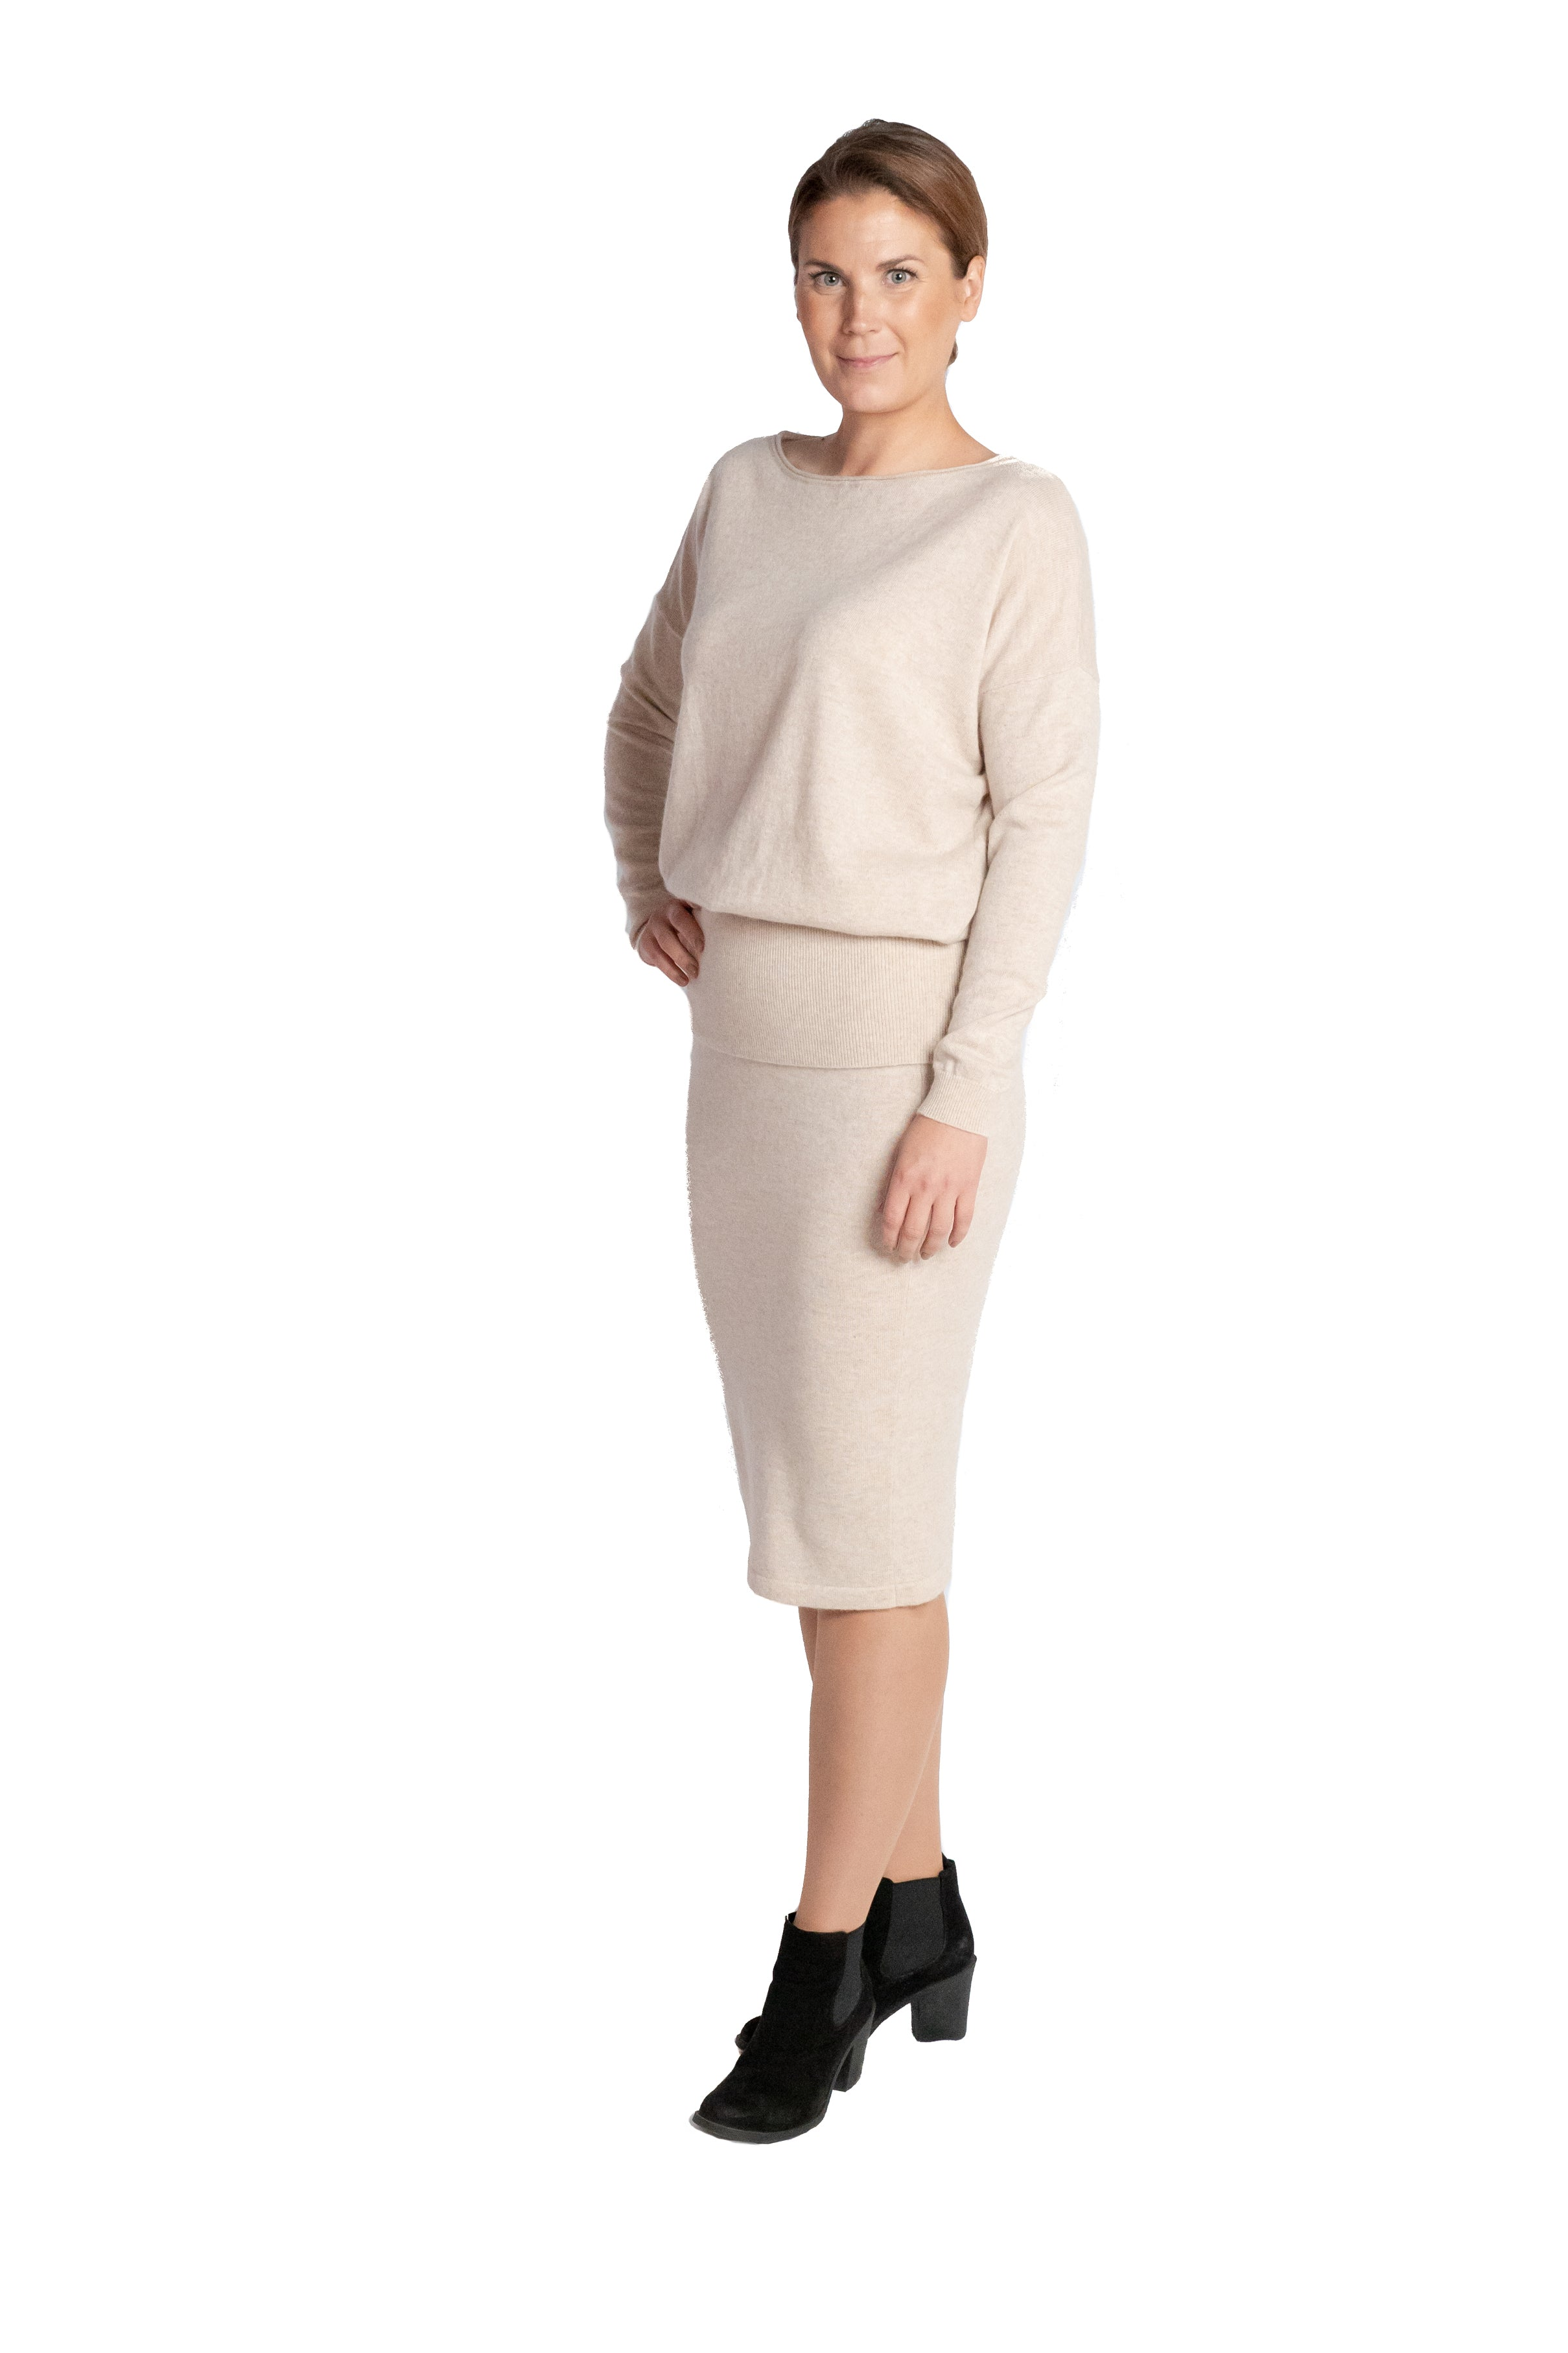 Inari Women's beige cashmere O-neck sweater - front side - 100% high-quality cashmere - Inari-clothing.fi